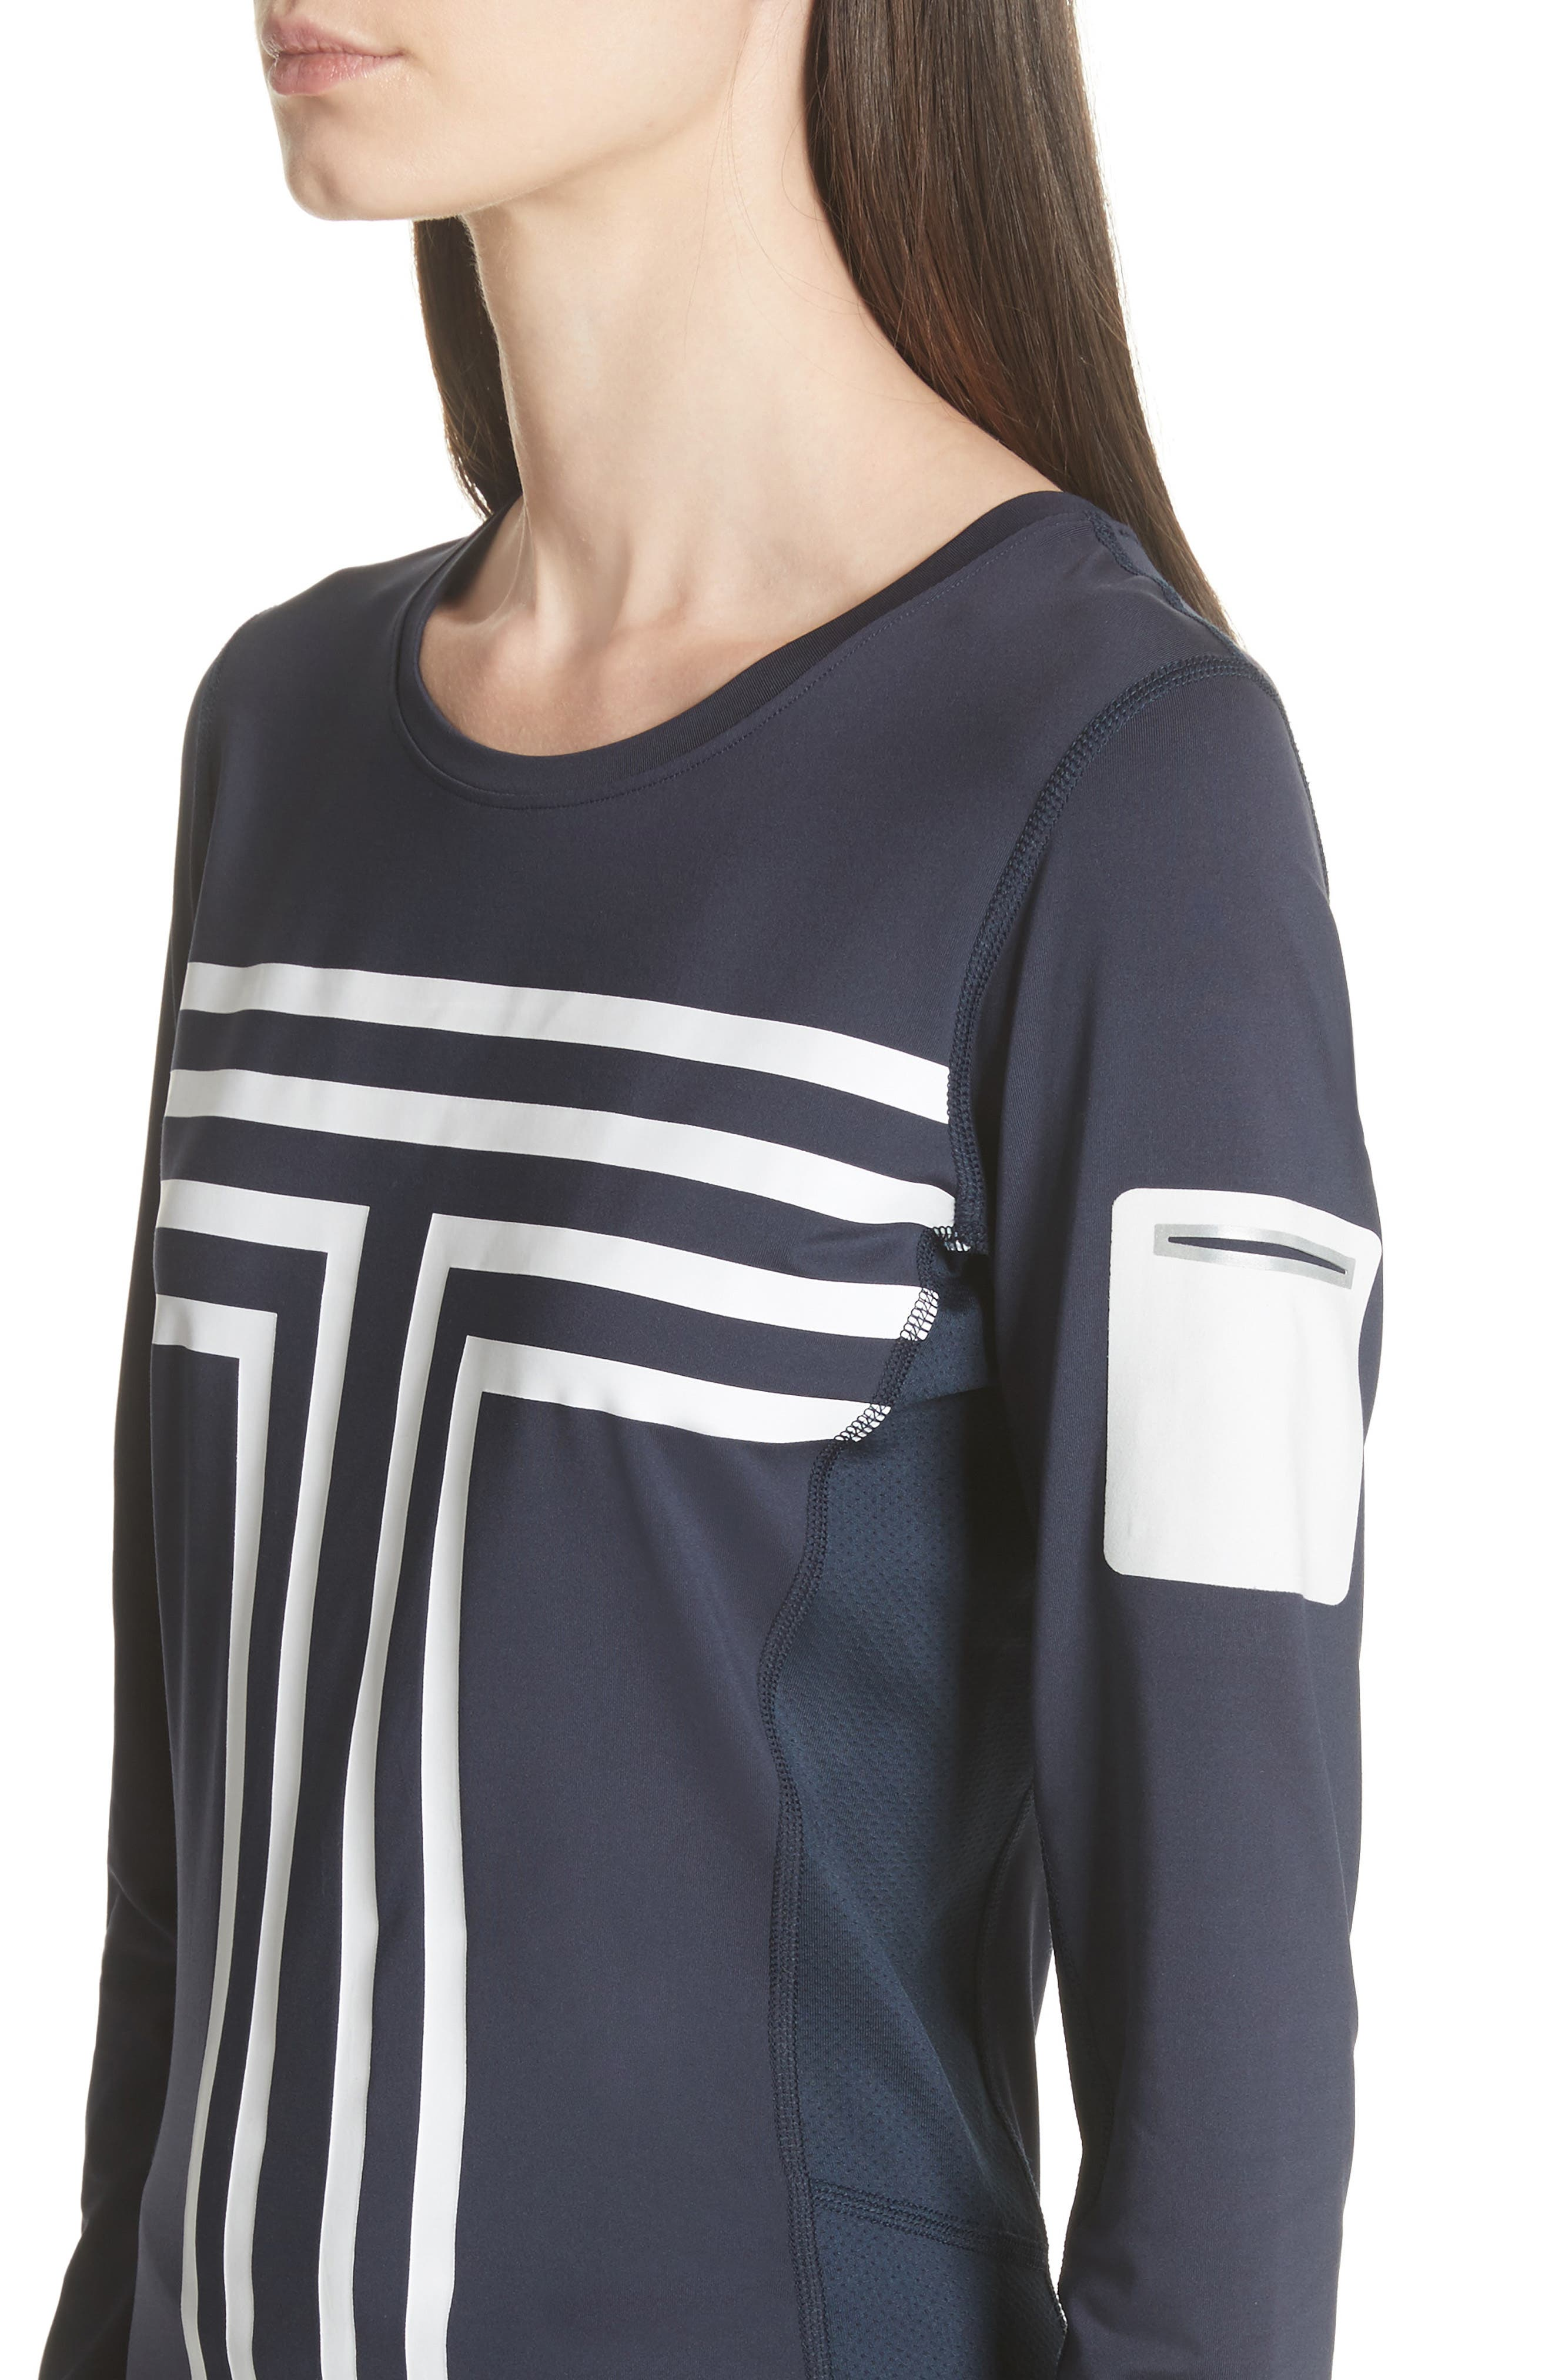 Graphic Performance Top,                             Alternate thumbnail 4, color,                             Tory Navy